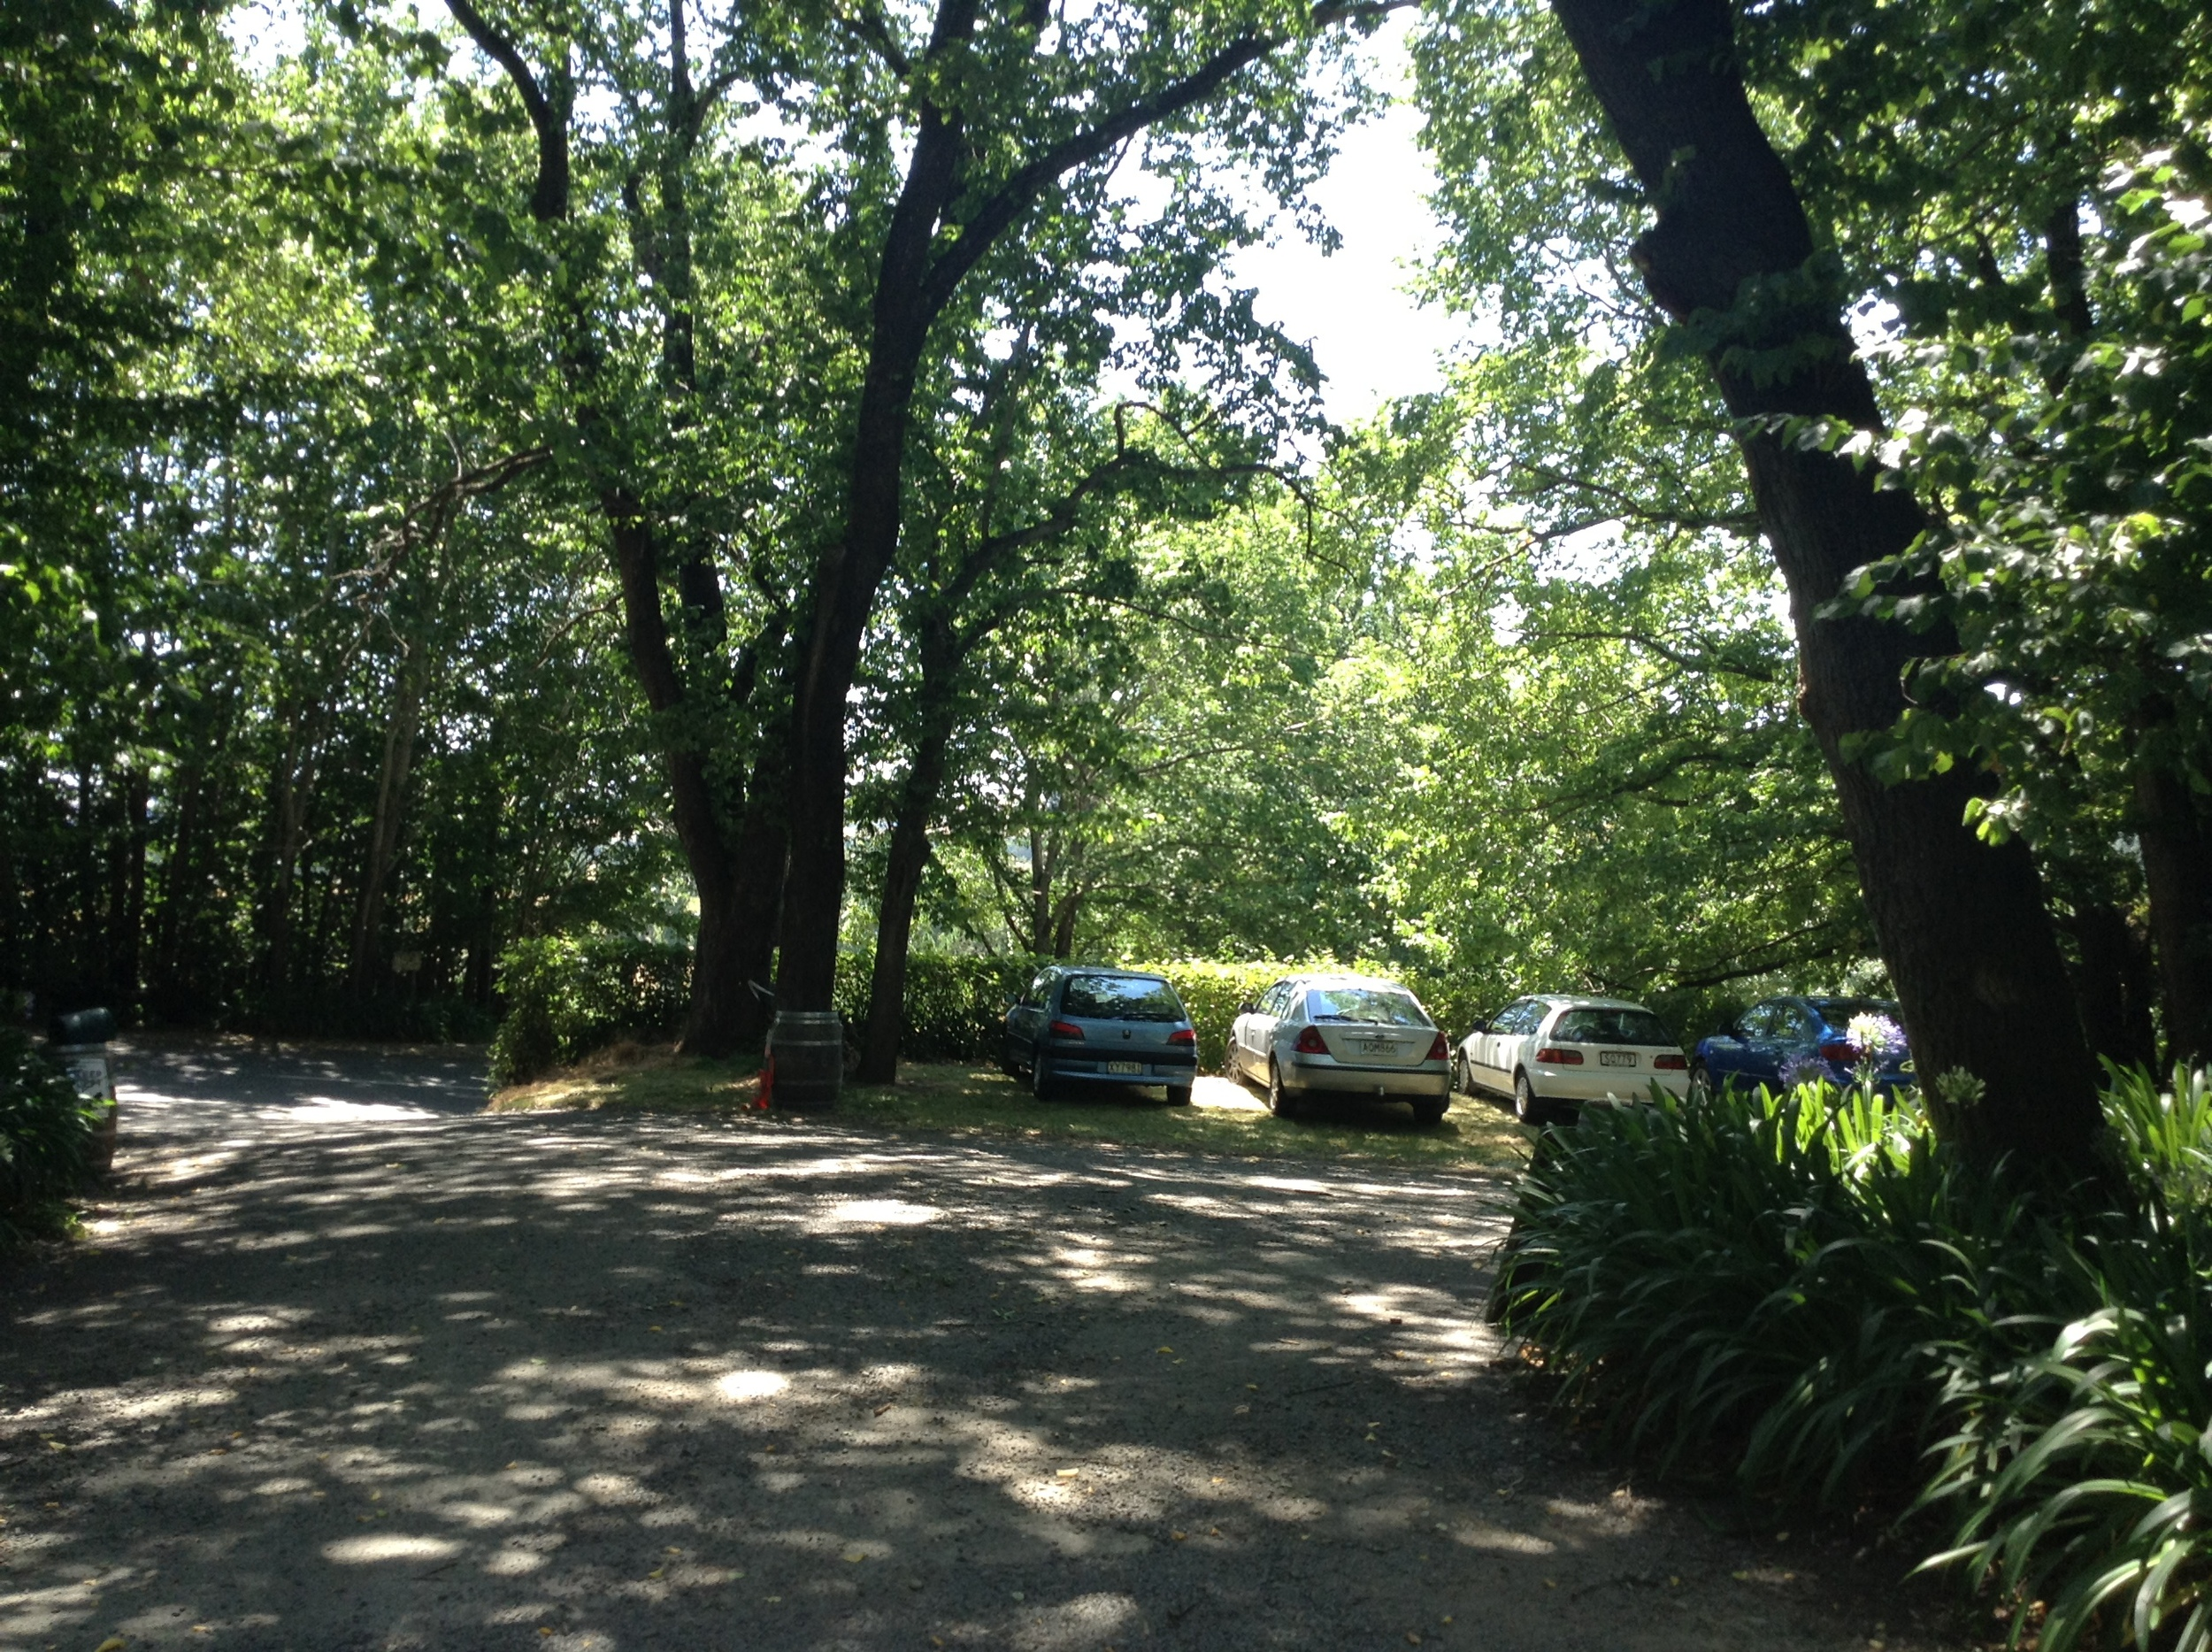 The leafy car park was welcome respite from the heat of the day.